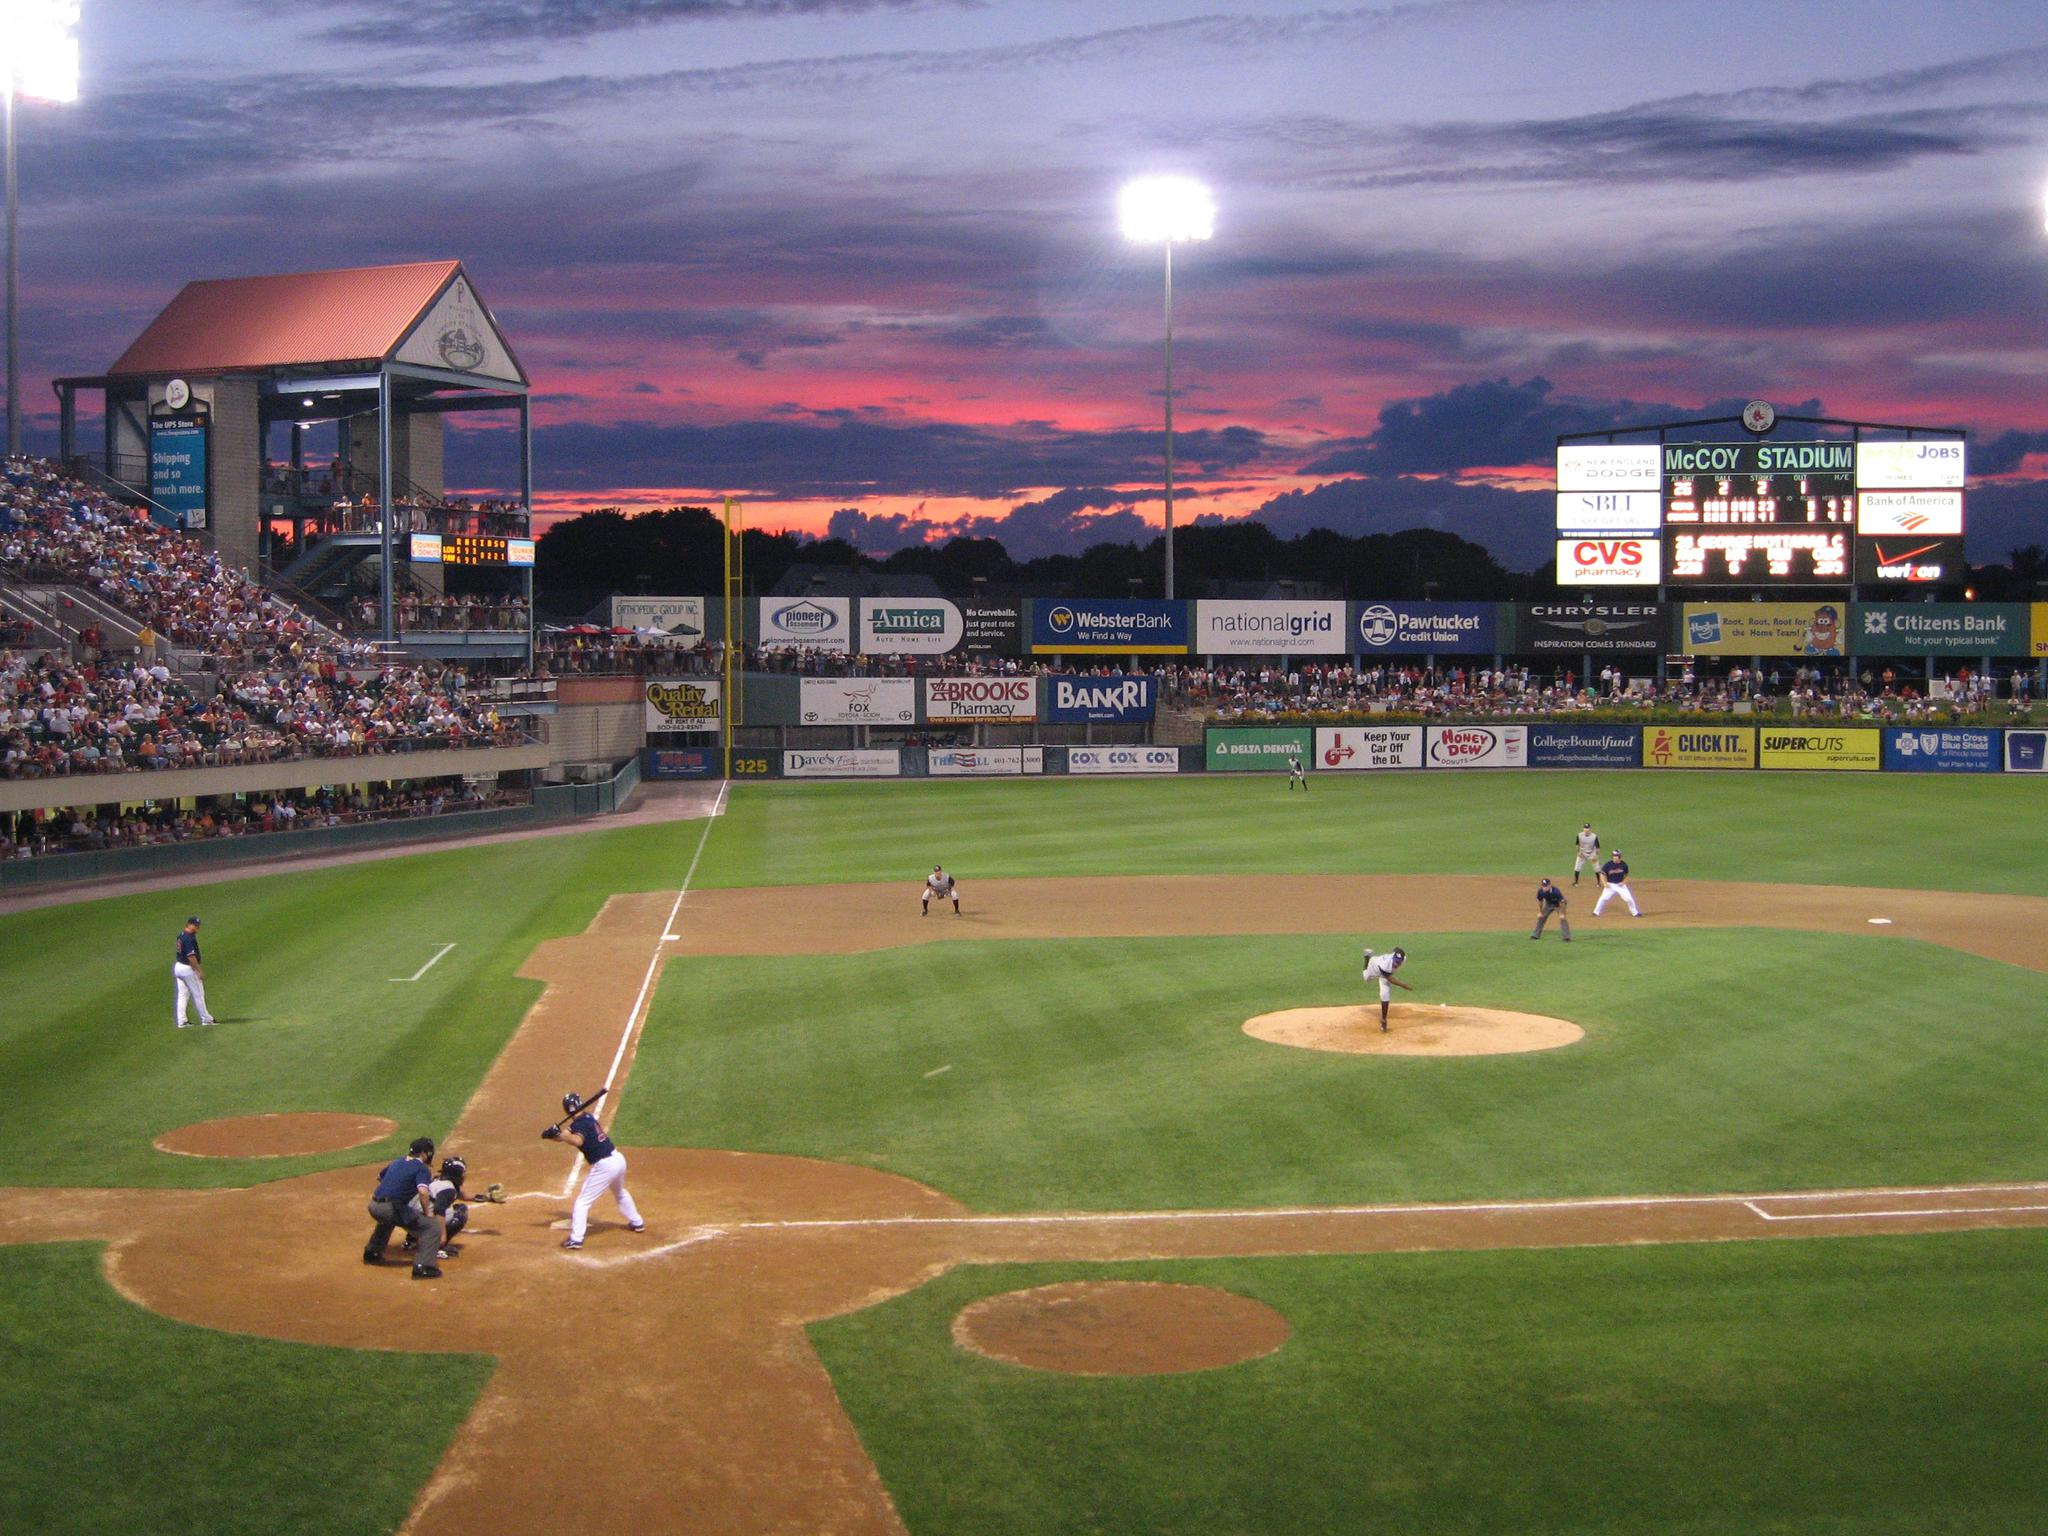 Photo: Twilight at McCoy Stadium.